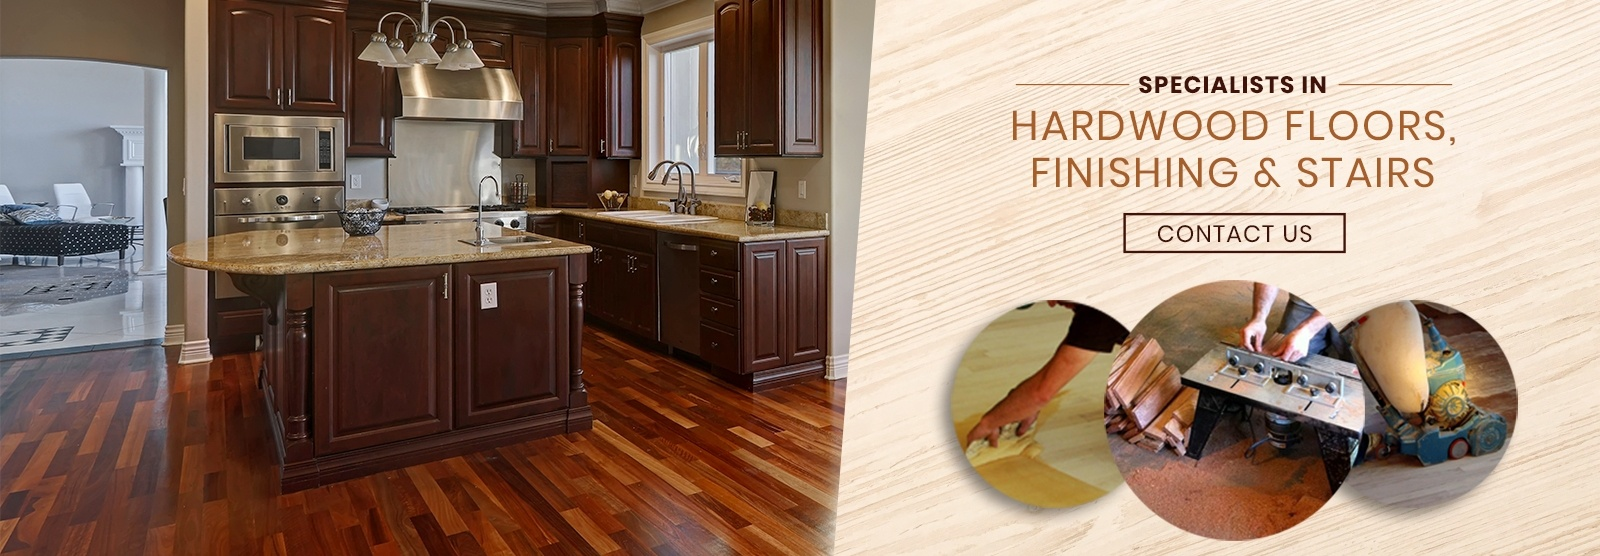 Specialists in Hardwood Floors, Finishing and Stairs - Al Havner and Sons Hardwood Flooring